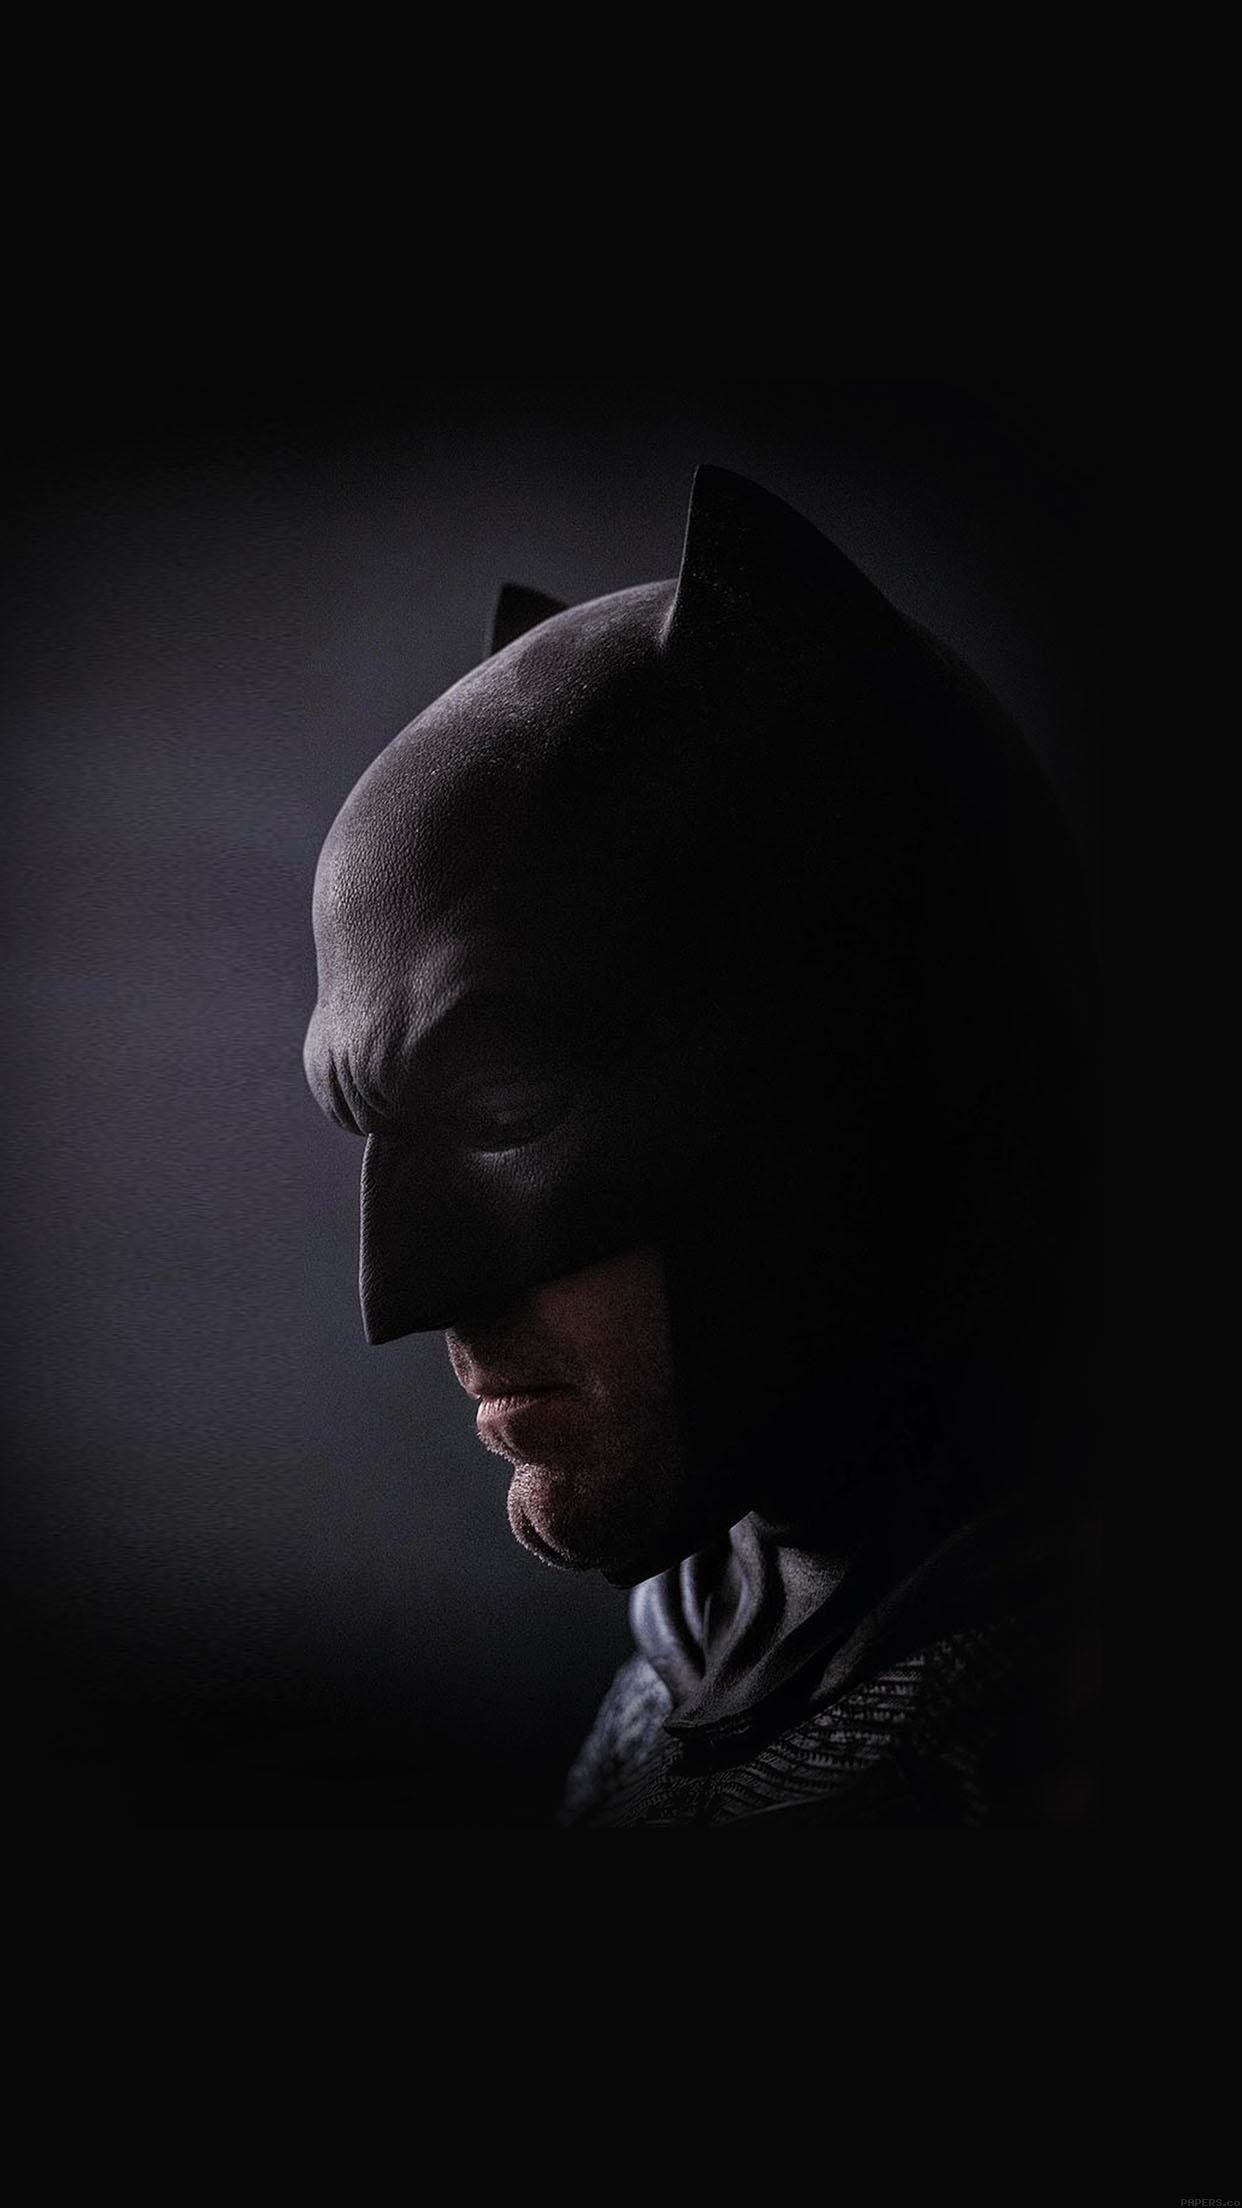 Batman Hd Wallpaper For Iphone 74 Images